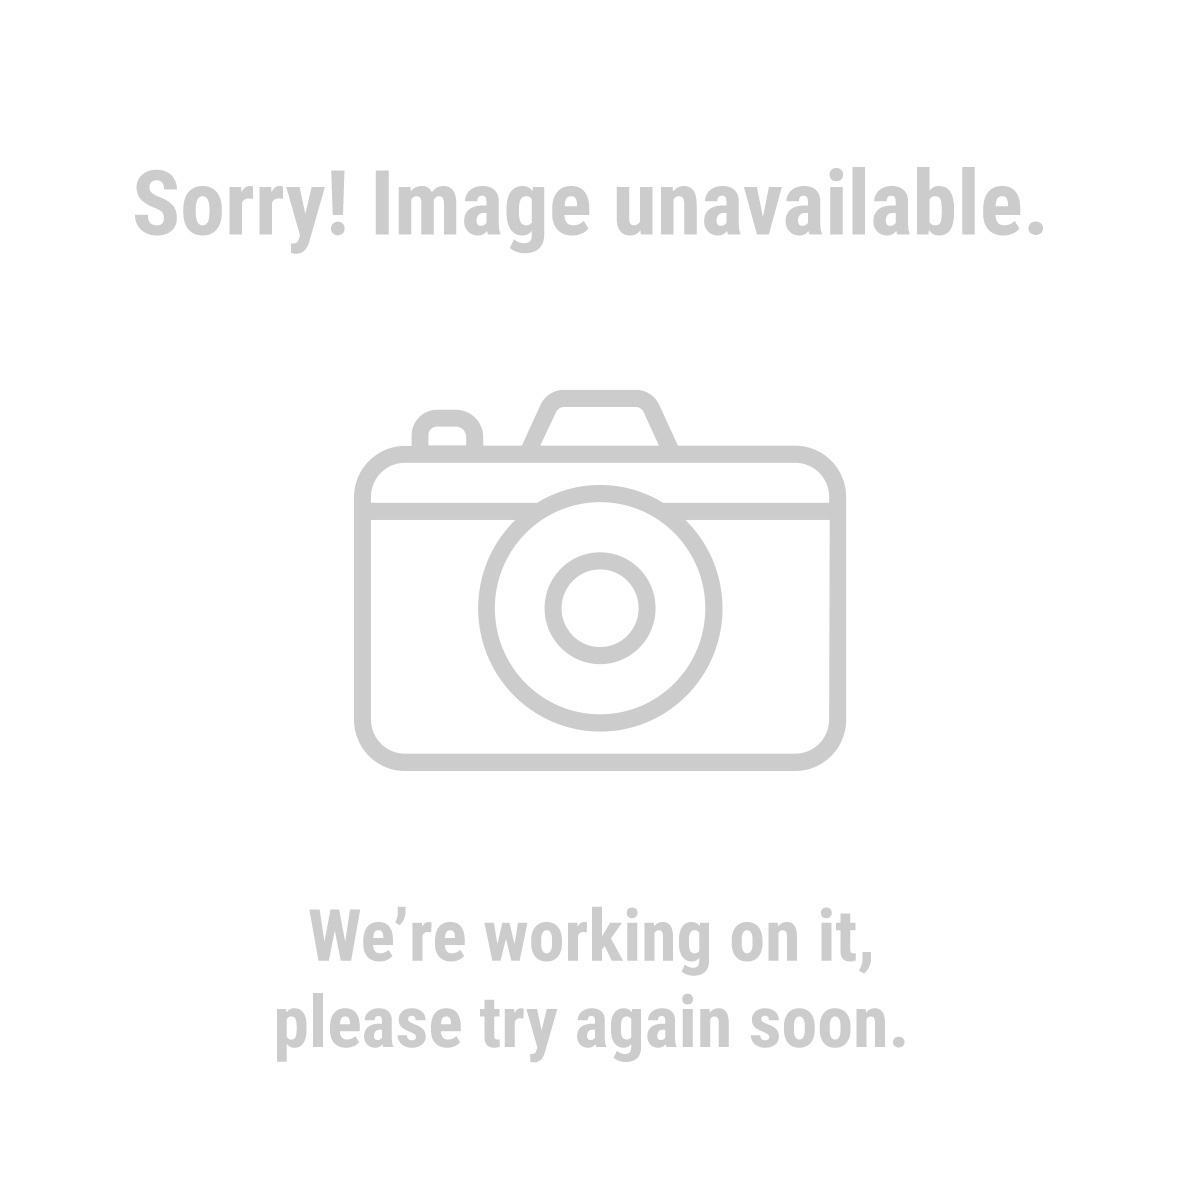 Central-Machinery 7340 20 Gallon Parts Washer with General Purpose Pump